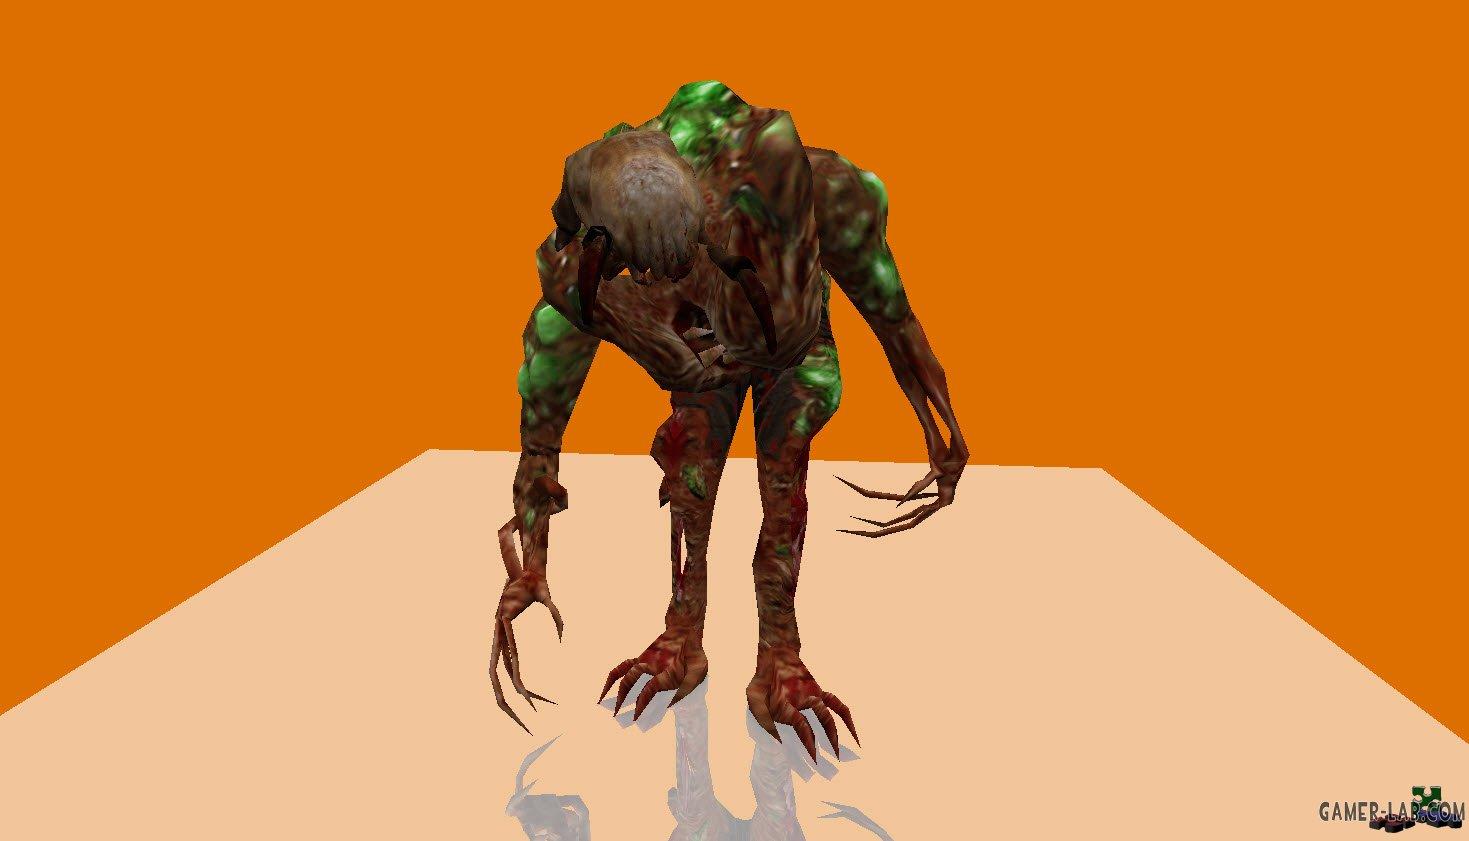 HD Gonome with HL2 headcrab